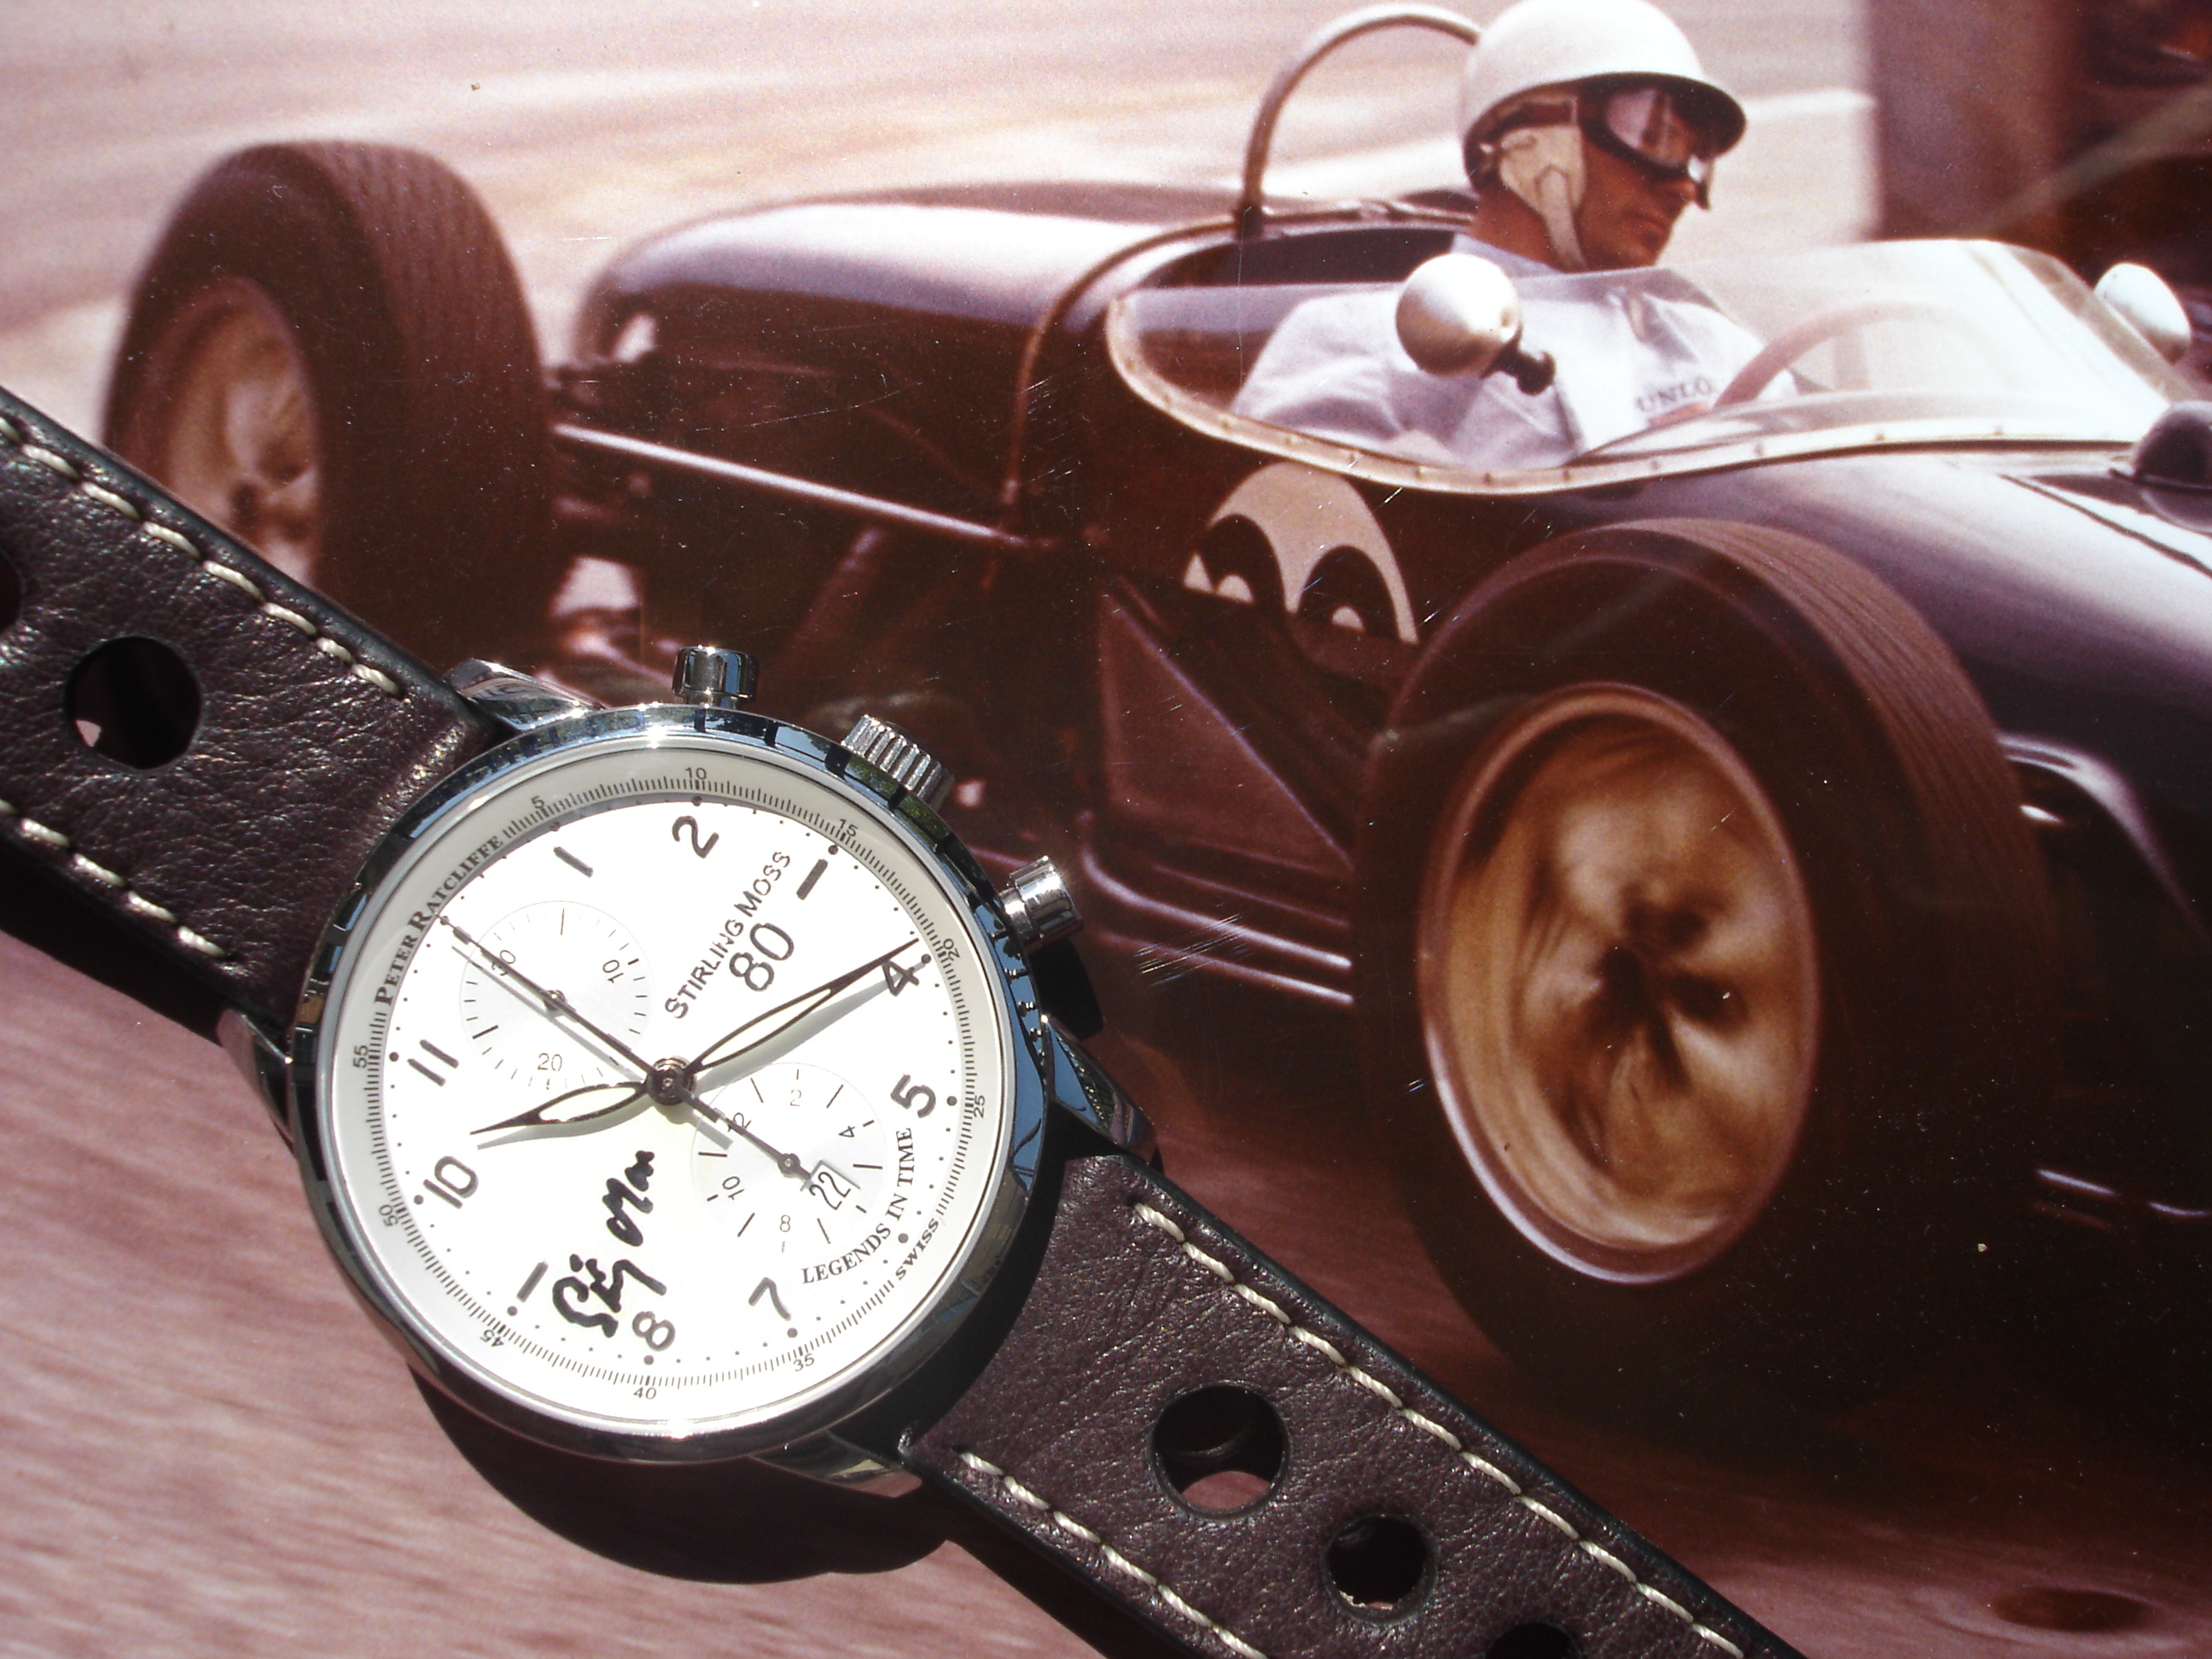 The Stirling Moss 80 features